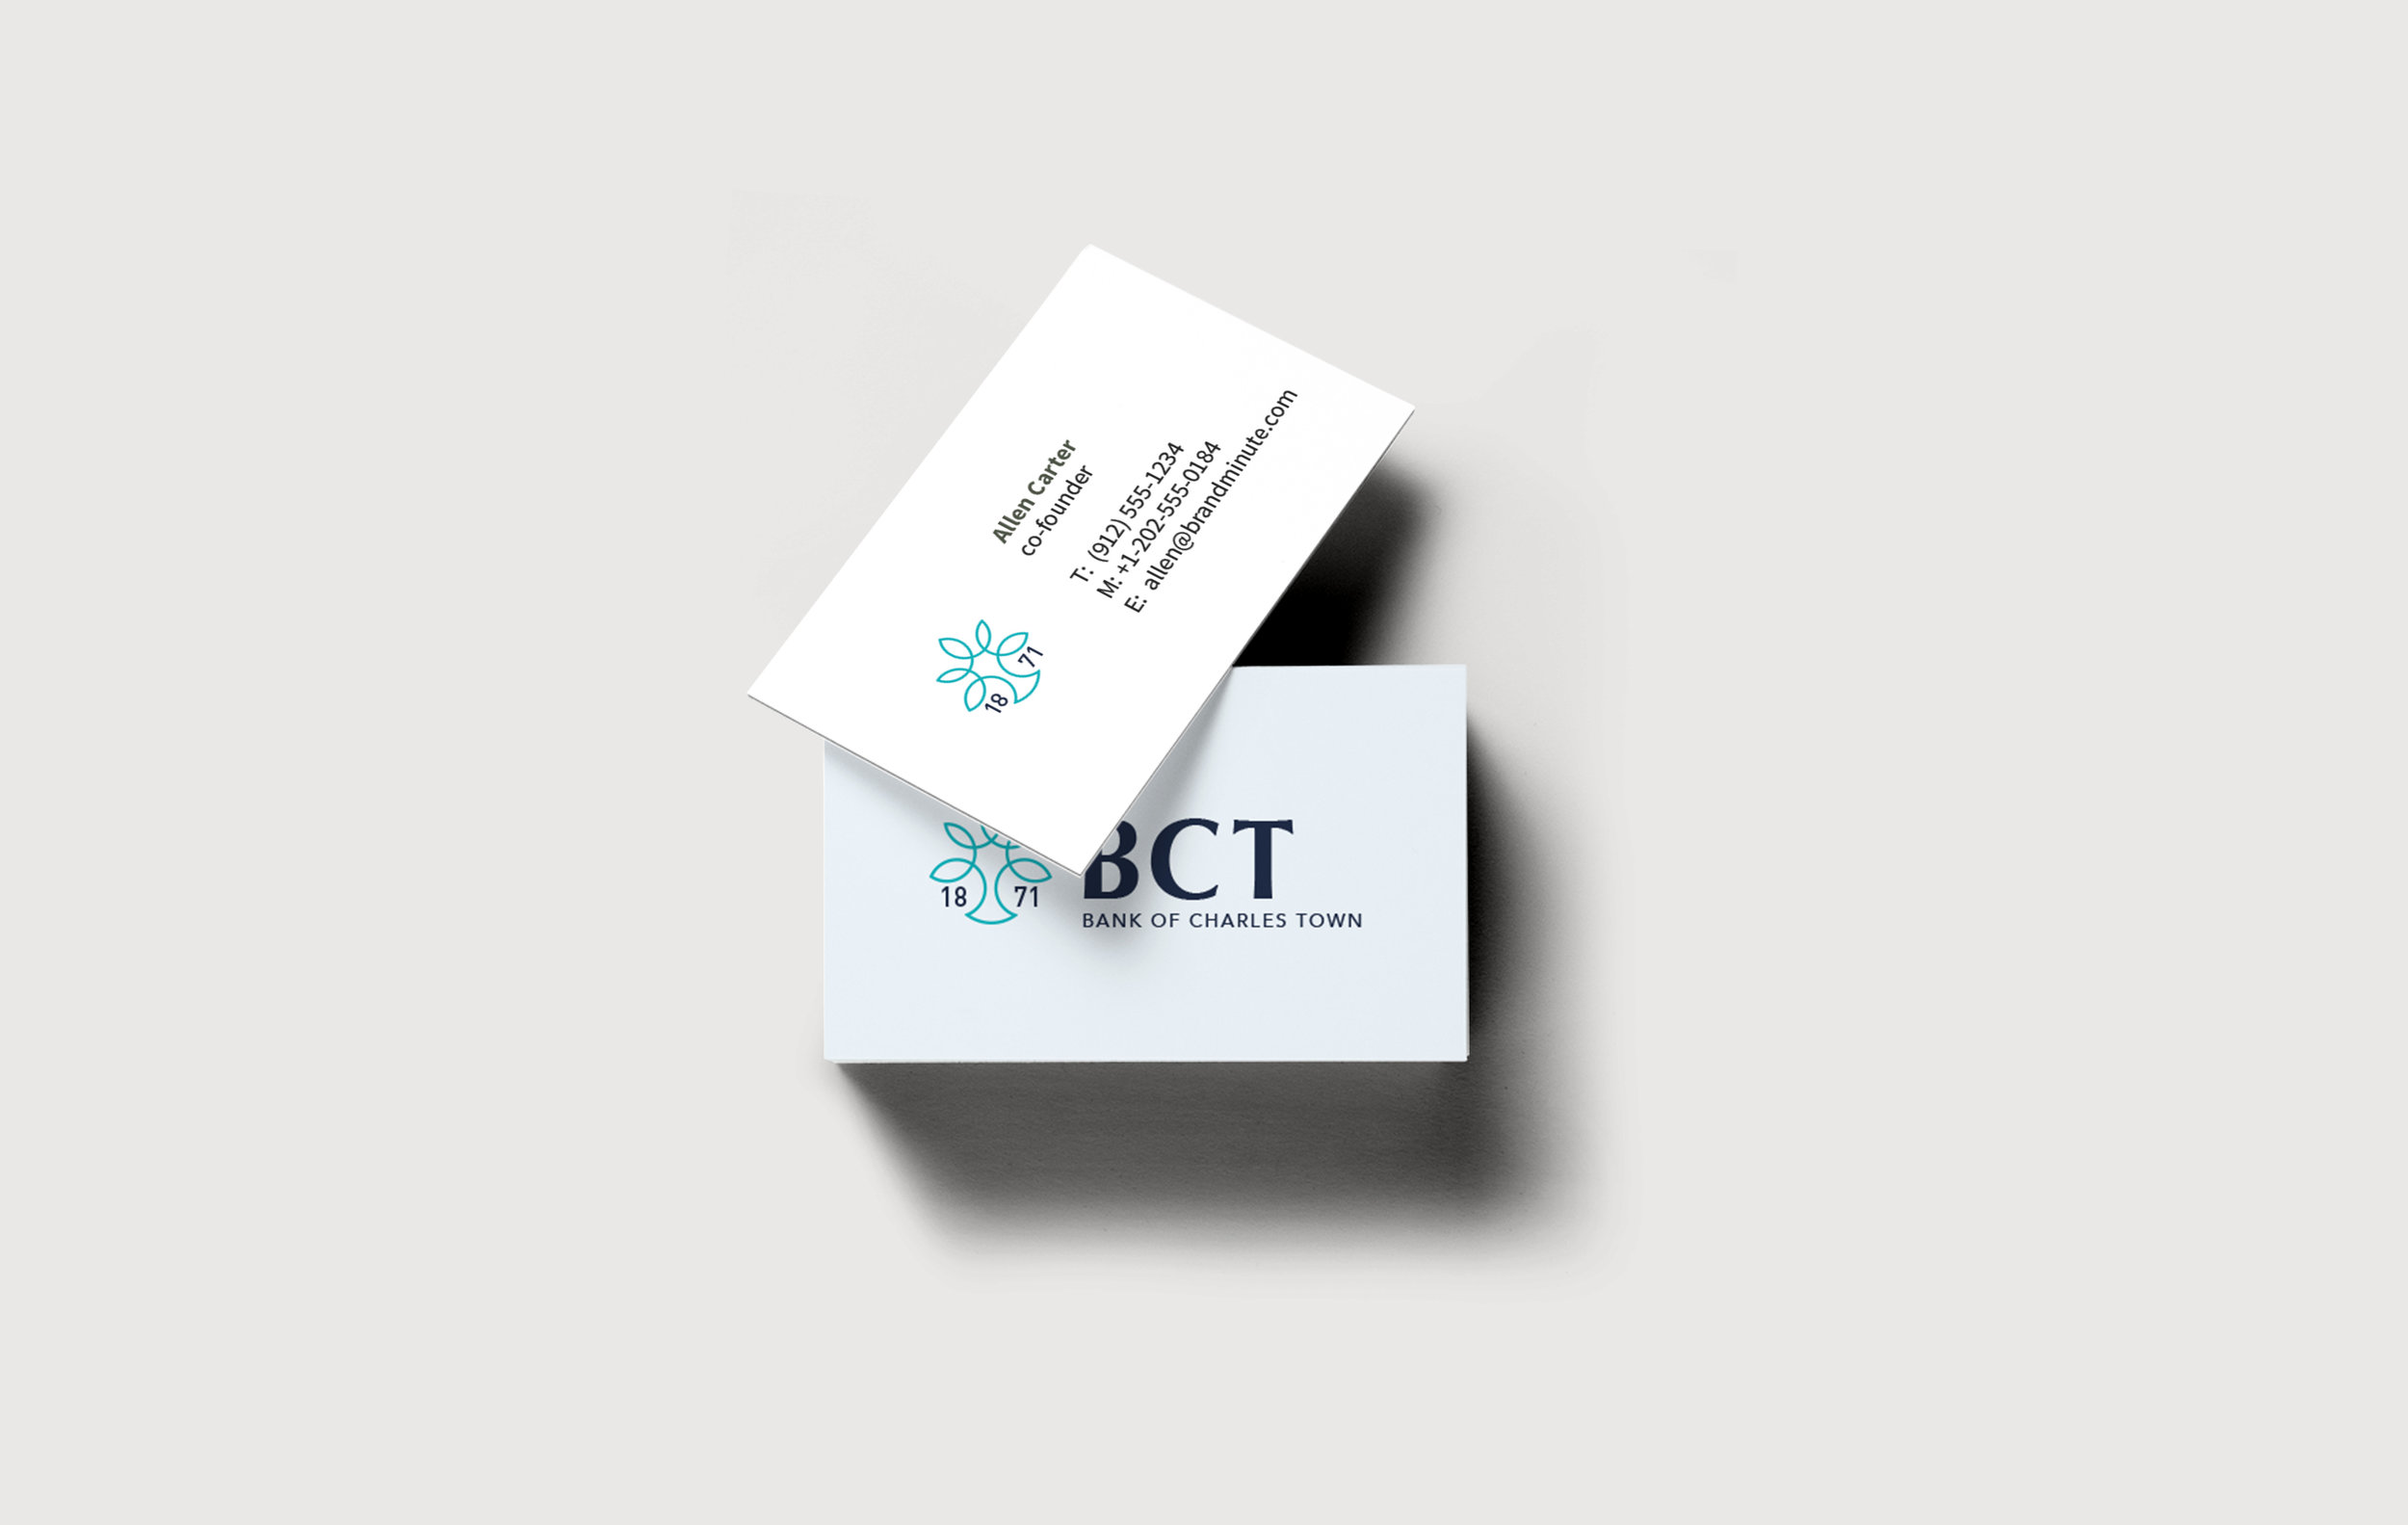 BCT_businesscard.jpg